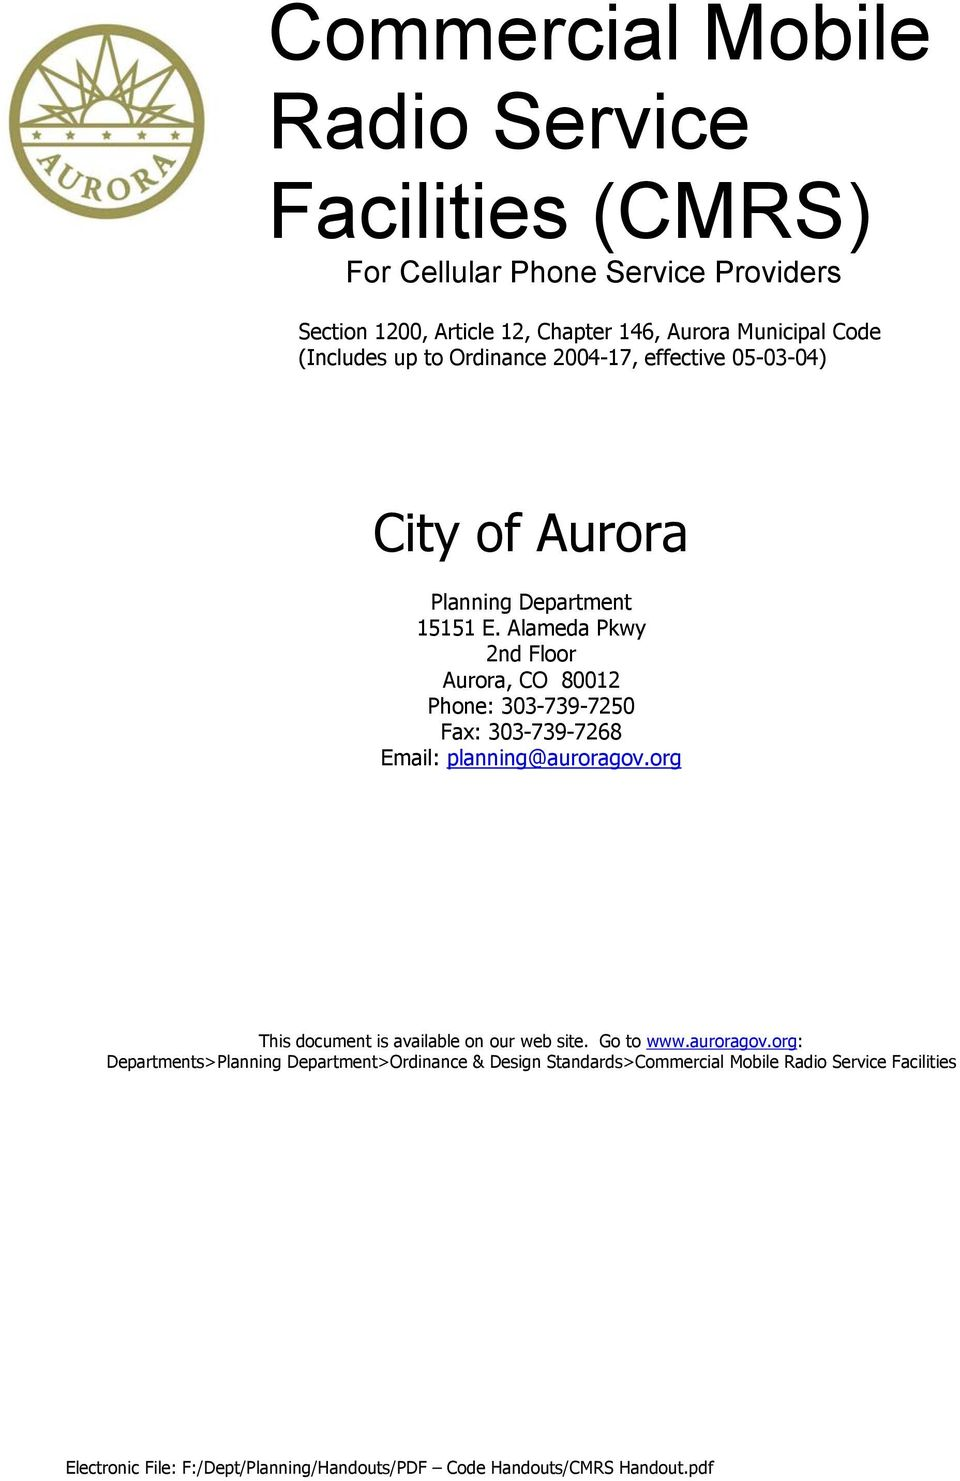 Alameda Pkwy 2nd Floor Aurora, CO 80012 Phone: 303-739-7250 Fax: 303-739-7268 Email: planning@auroragov.org This document is available on our web site.